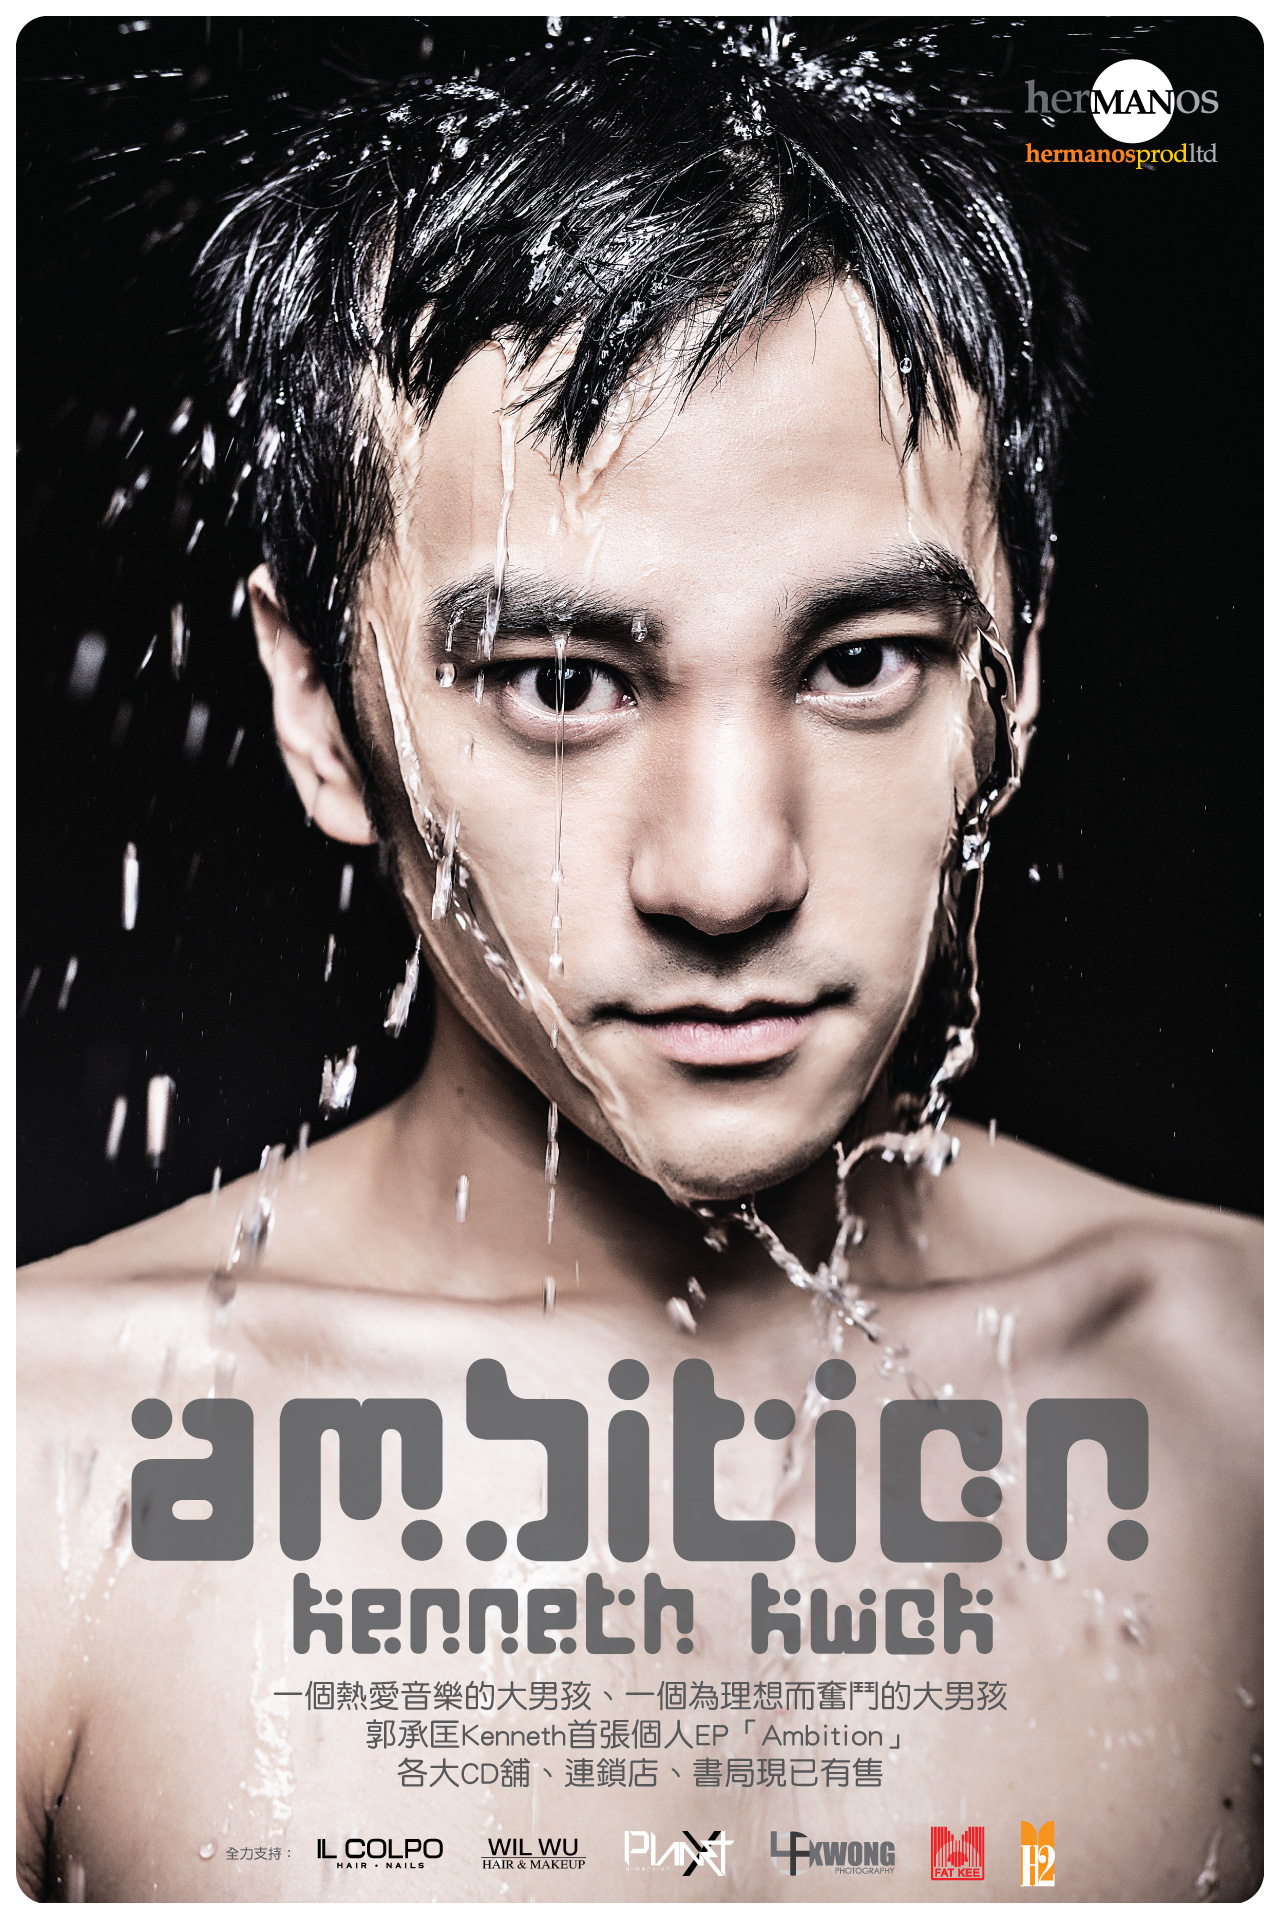 Kenneth Kwok CD Cover Poster